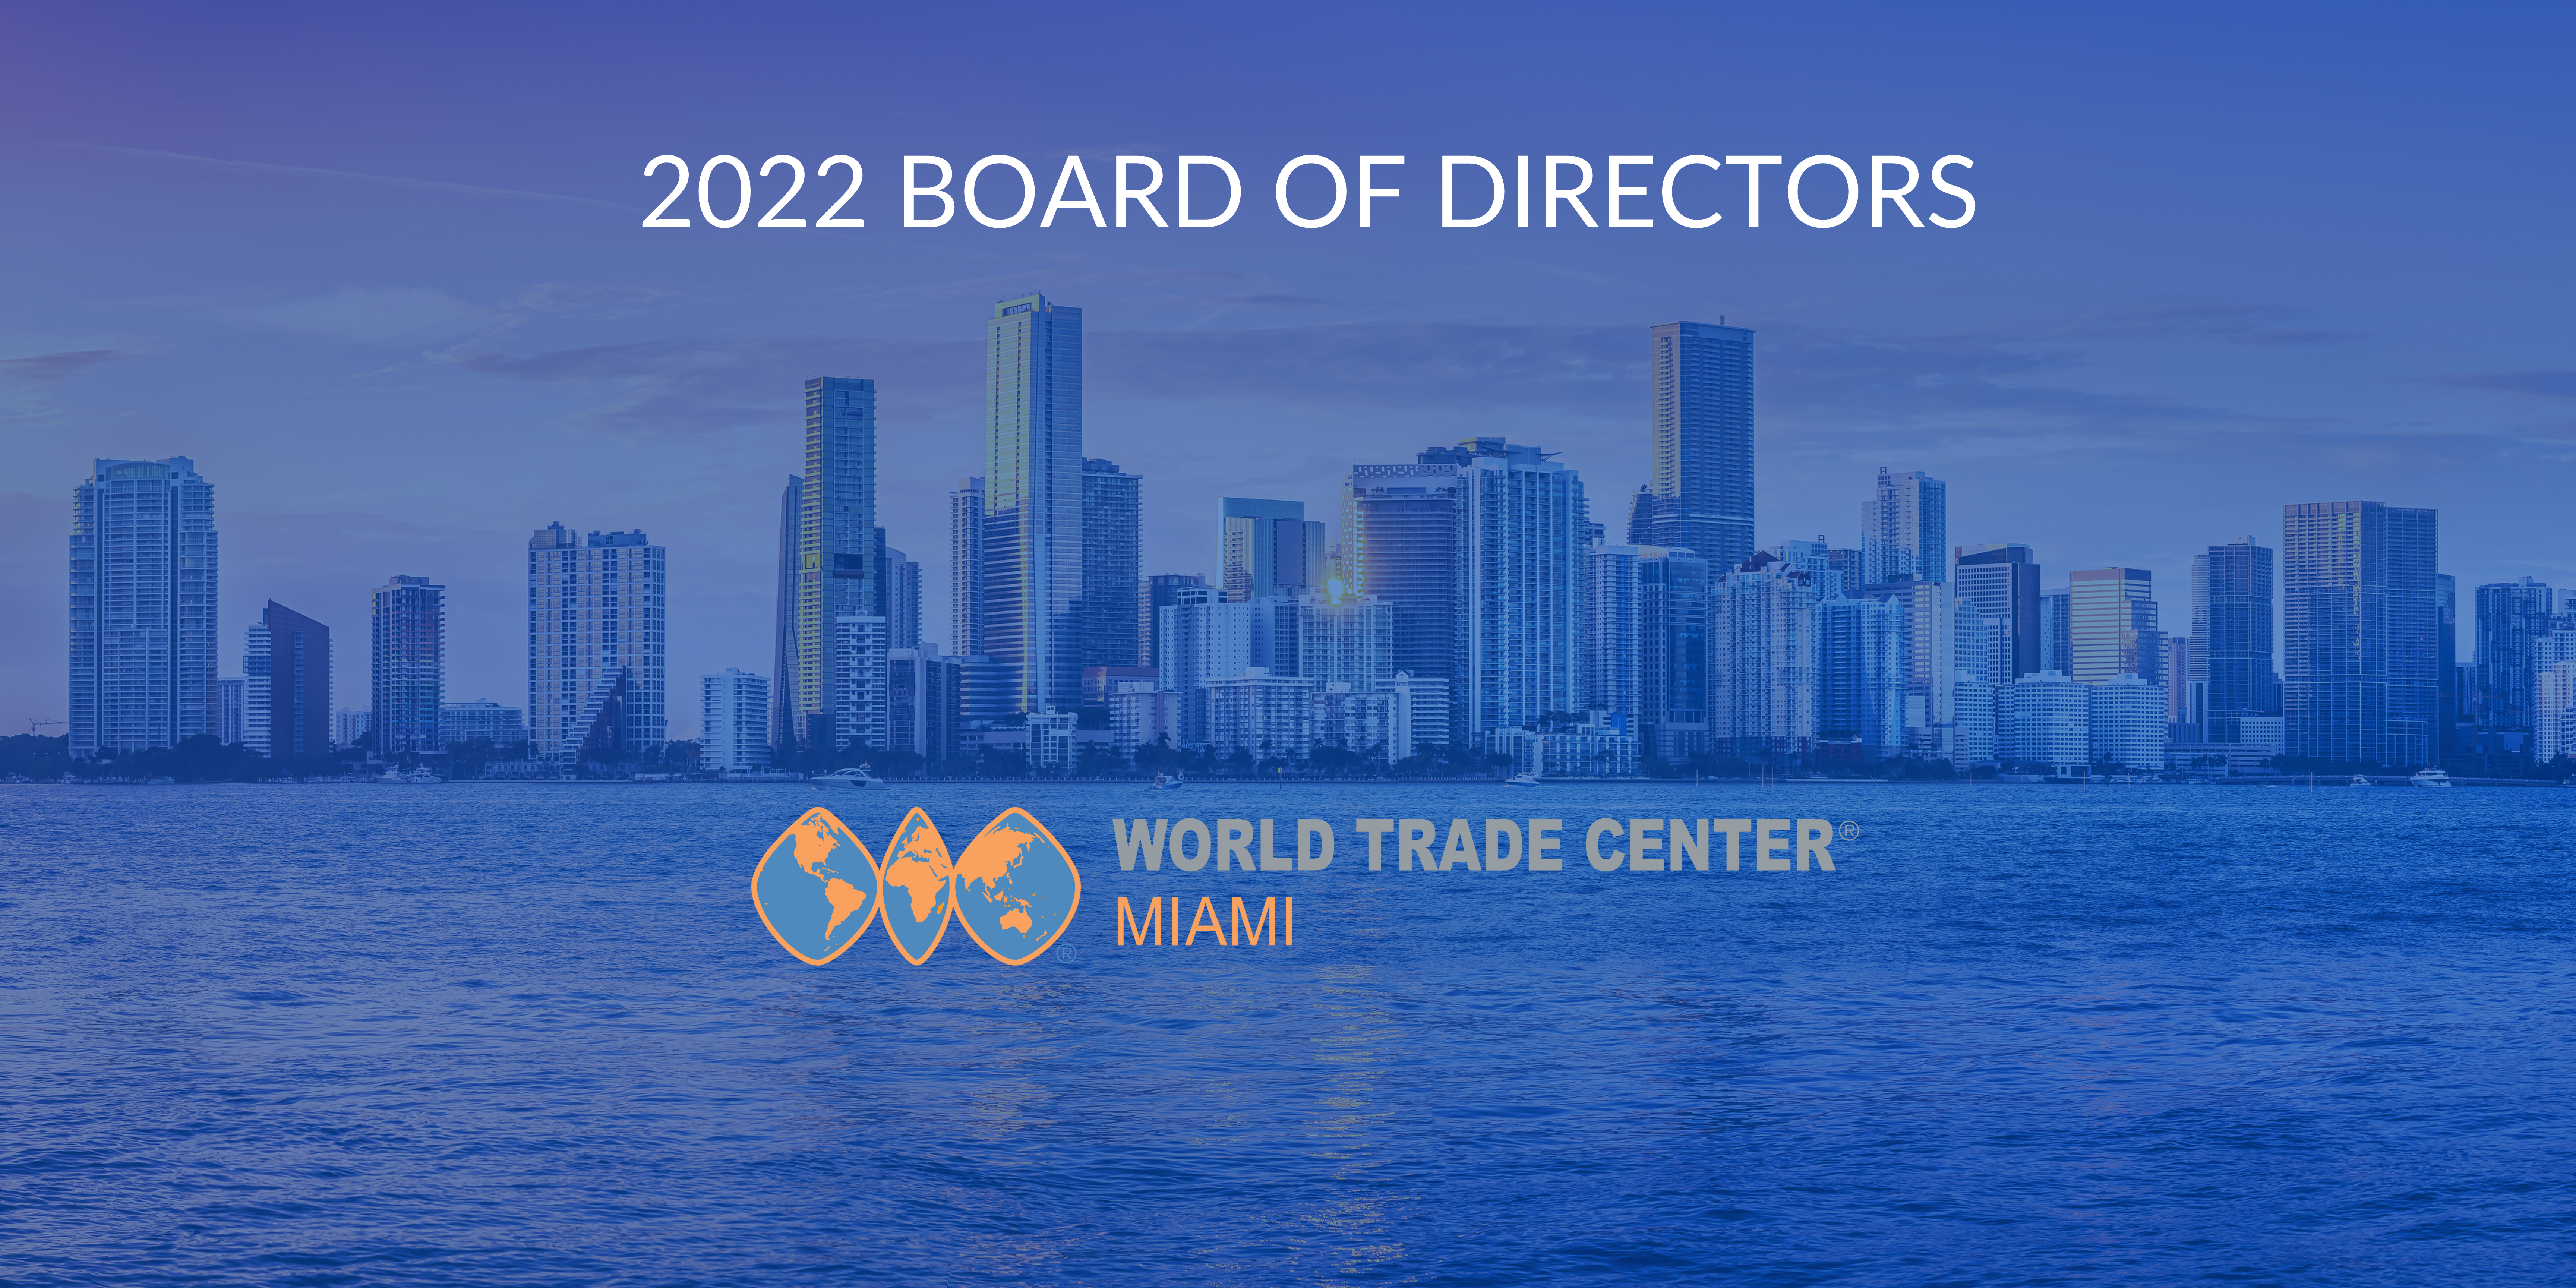 2022 Call for nominations